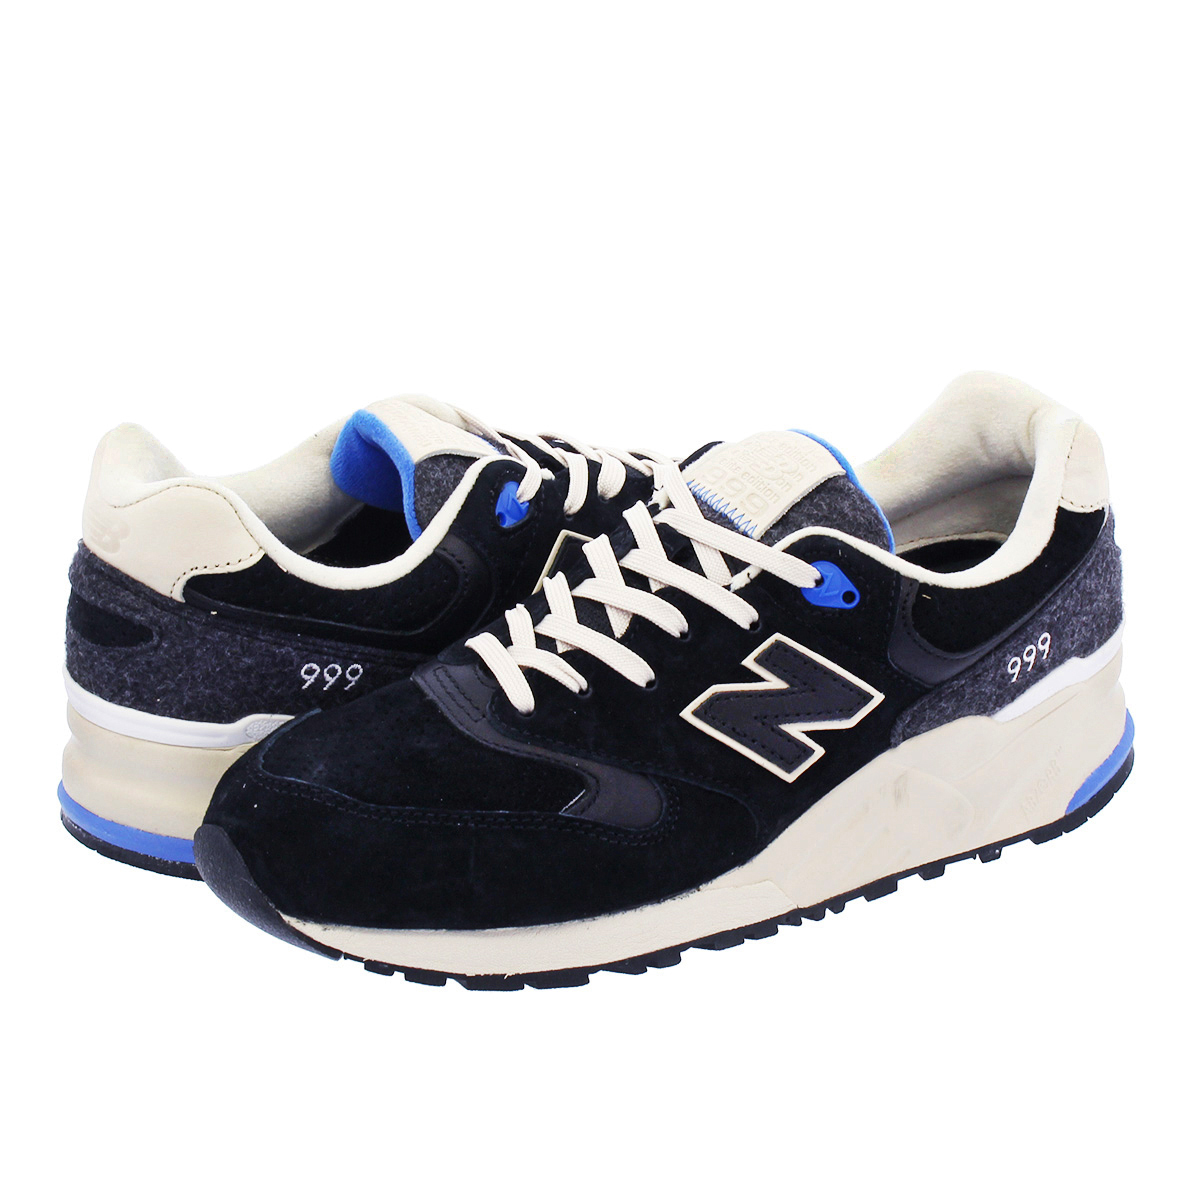 sports shoes d20dc 918af new balance 999 black and white